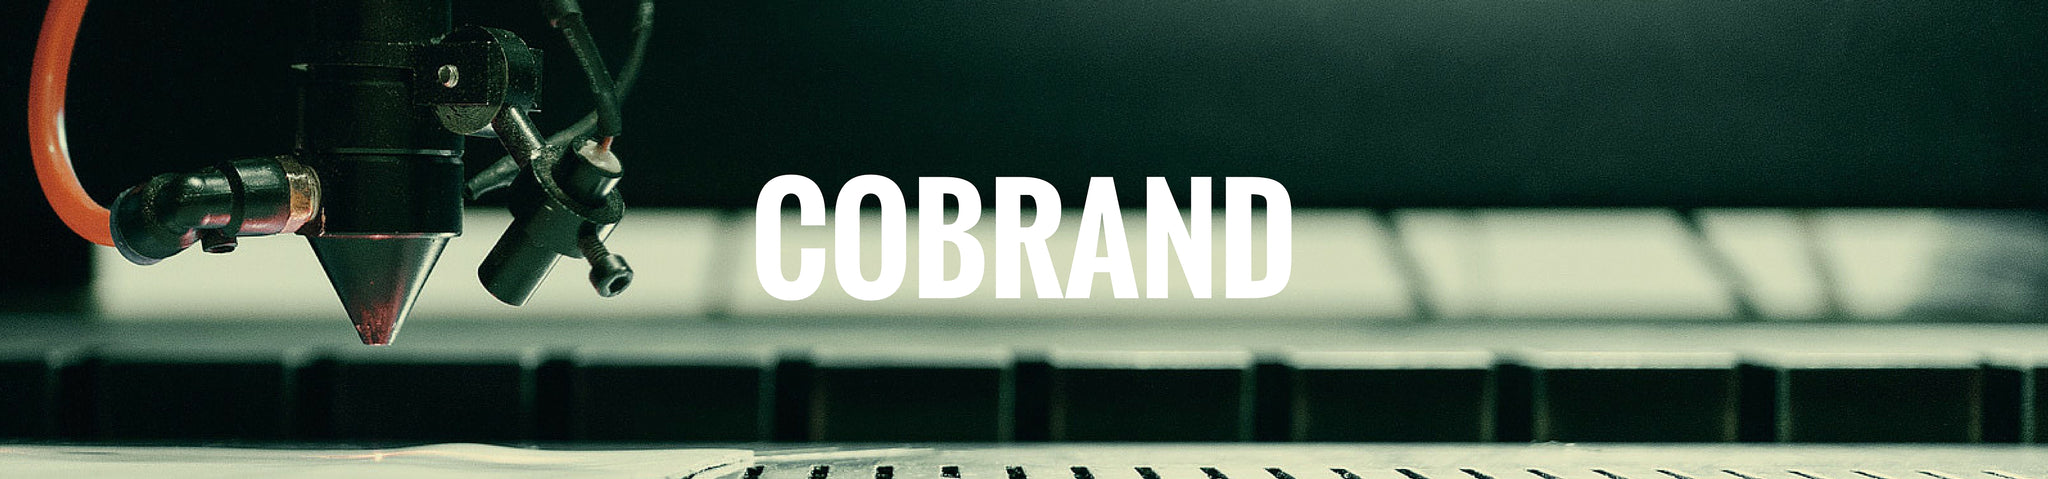 Two Wheel Gear Cobrand